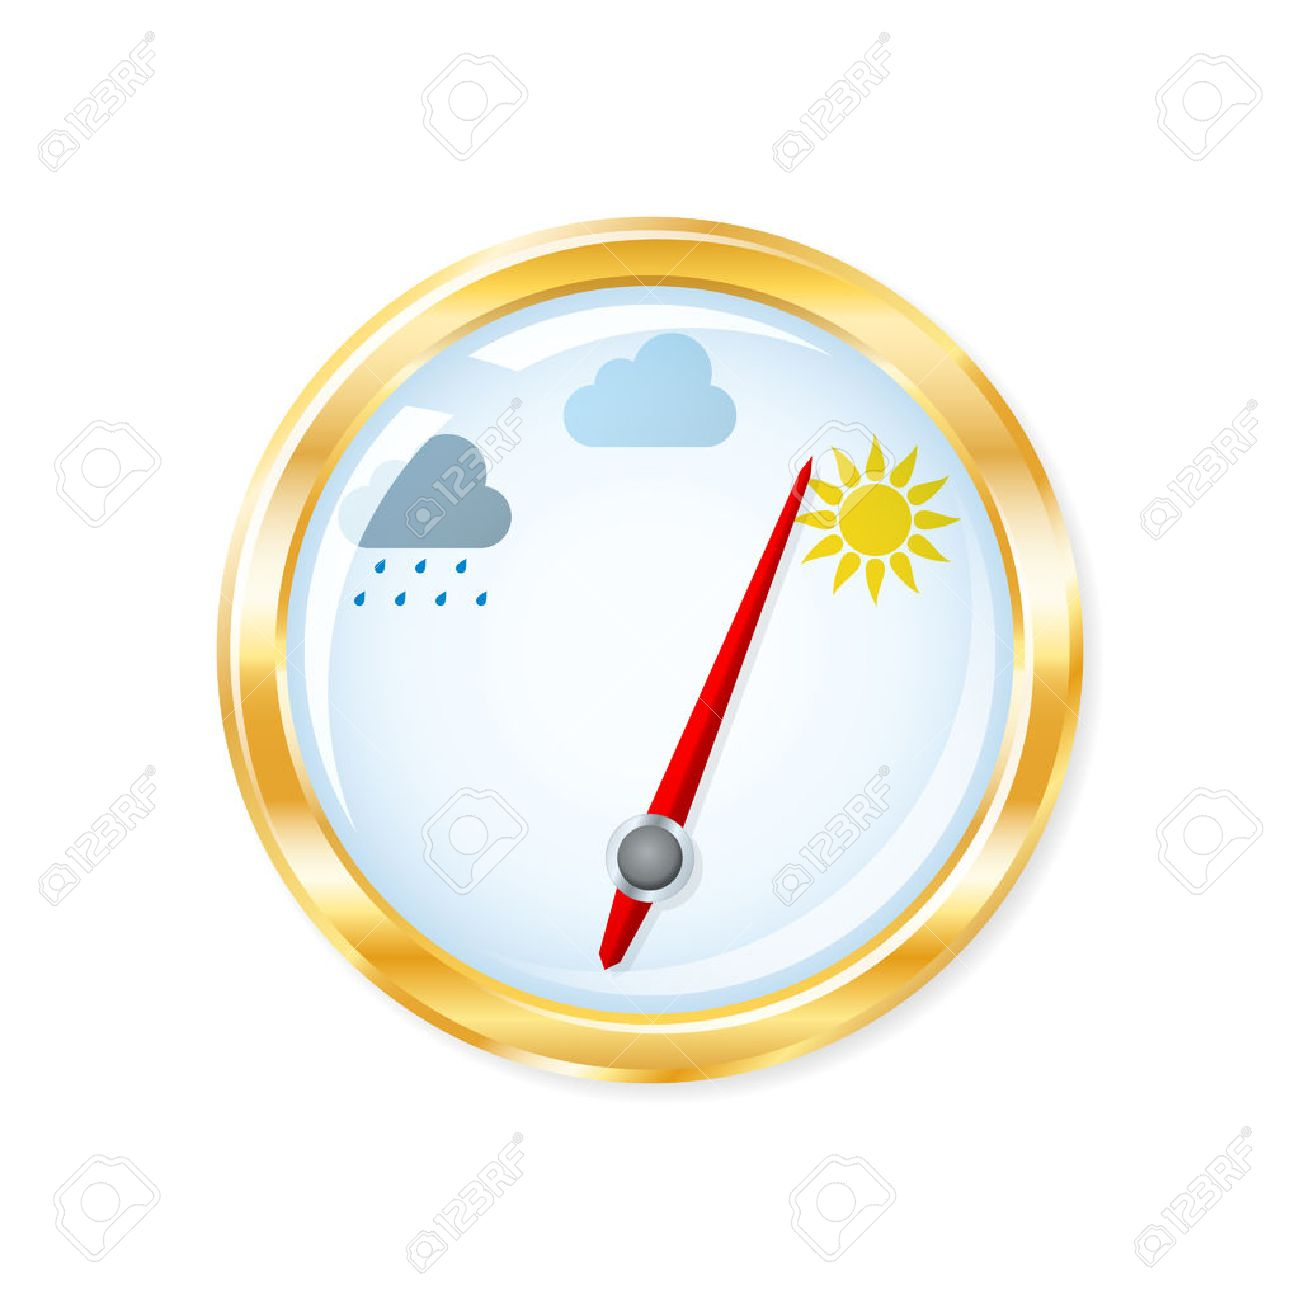 Barometer measuring indicates sunny weather. Vector illustration. Stock  Vector - 23167496